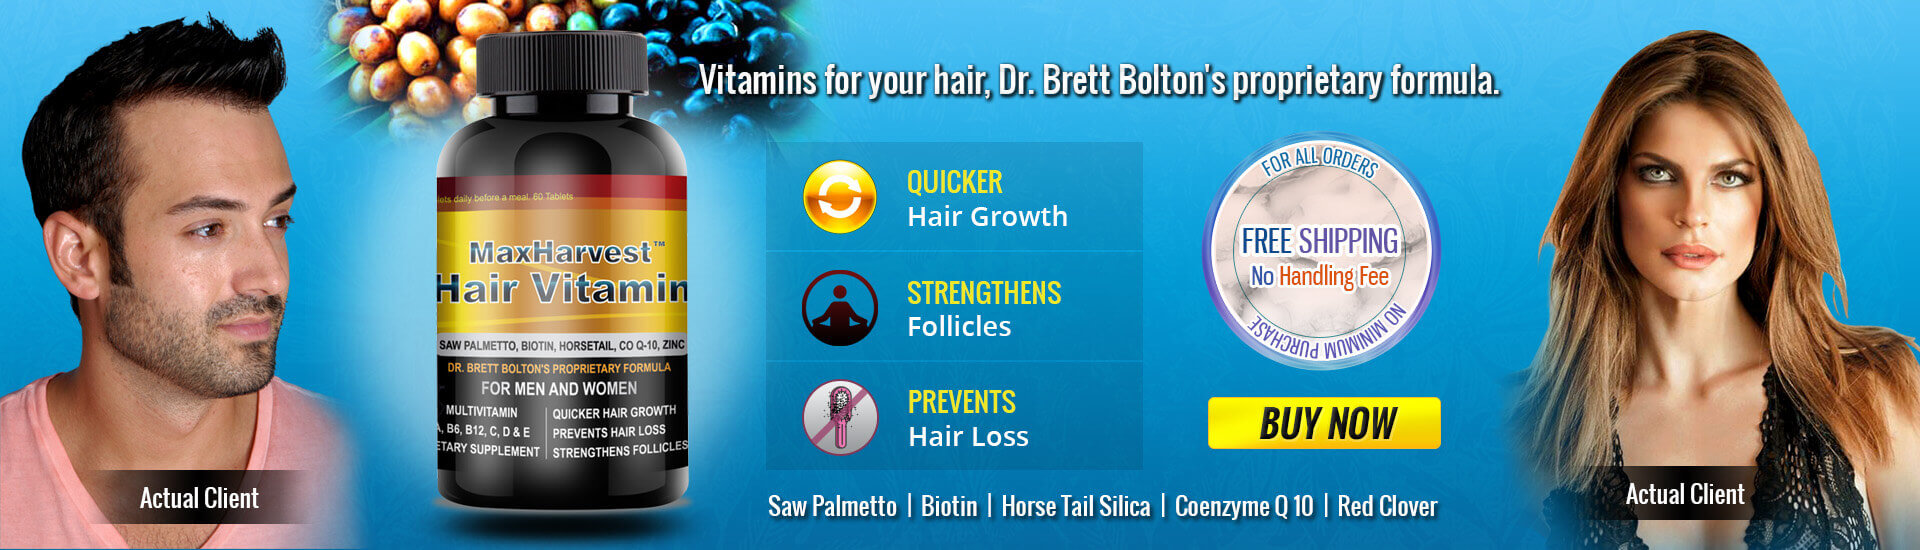 Vitamins for your hair, Dr. Brett Bolton's proprietary formula.